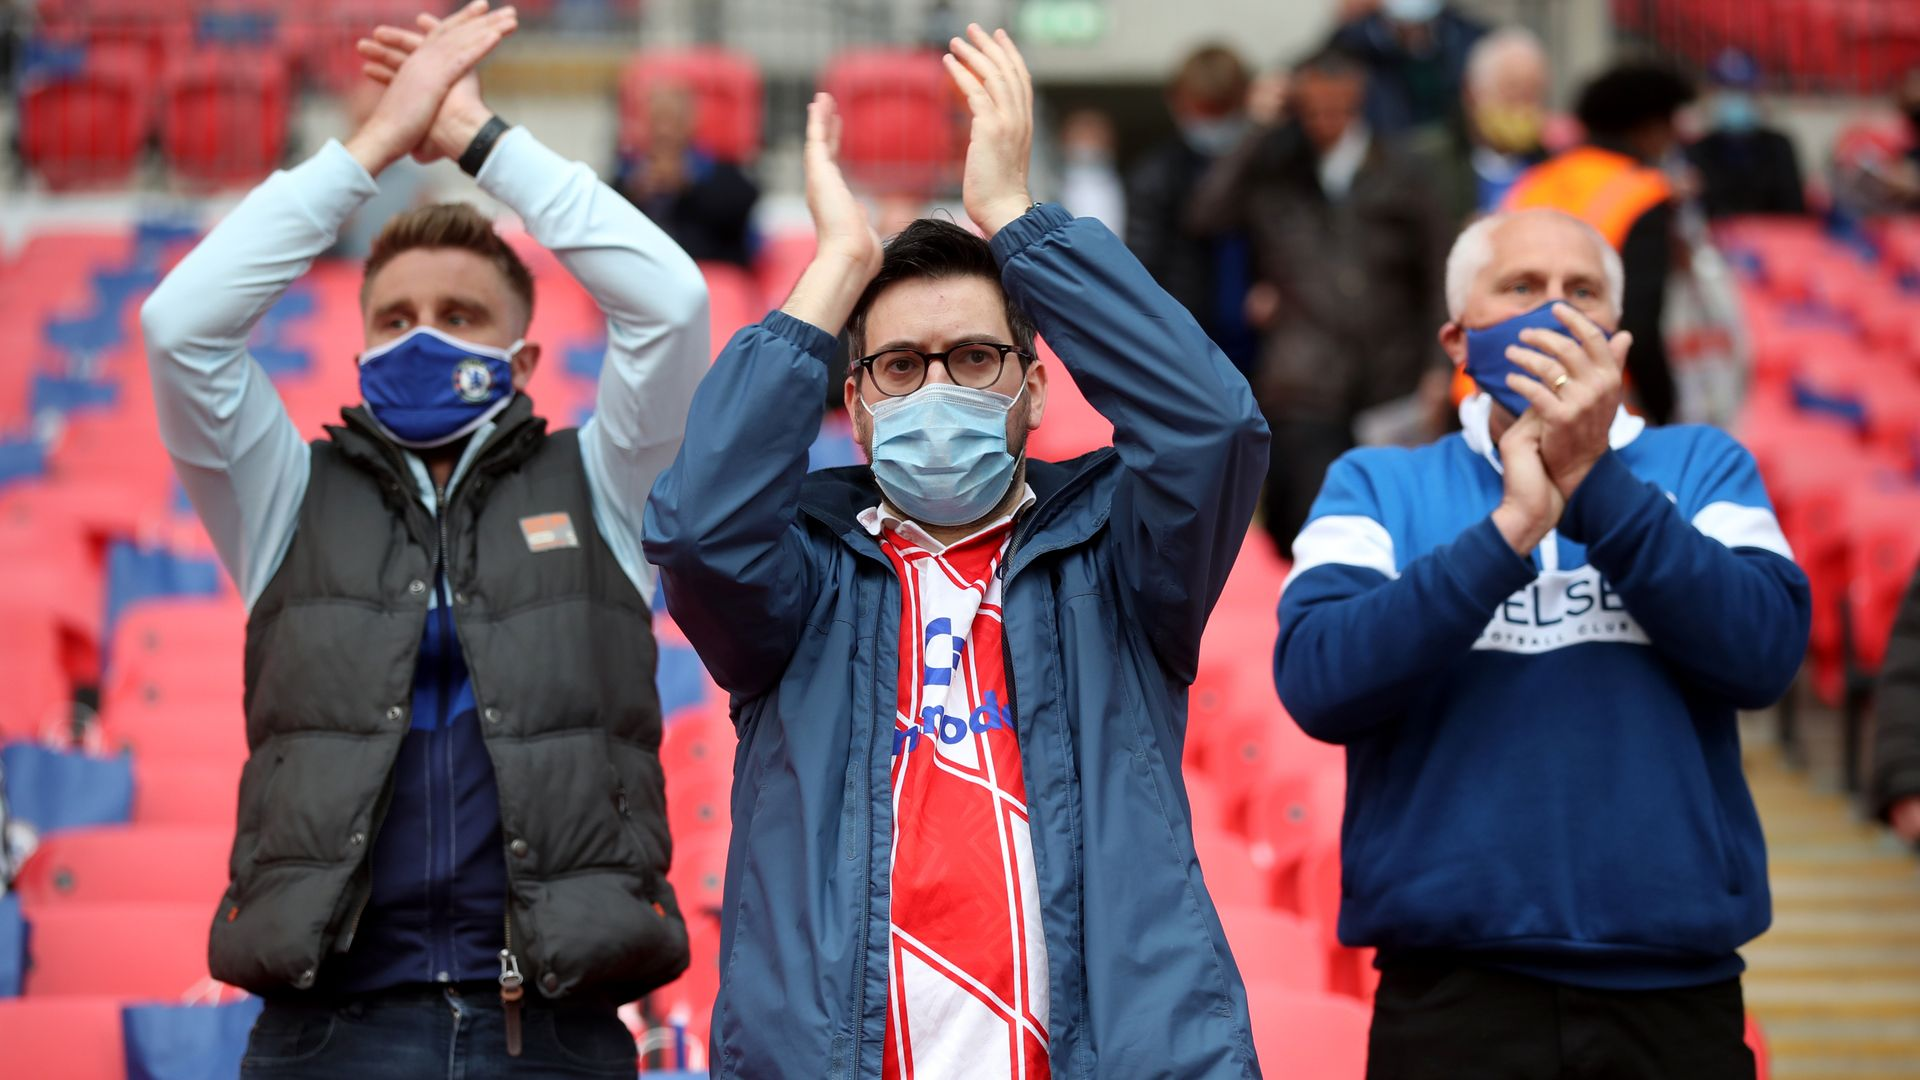 Sports fans return as restrictions ease